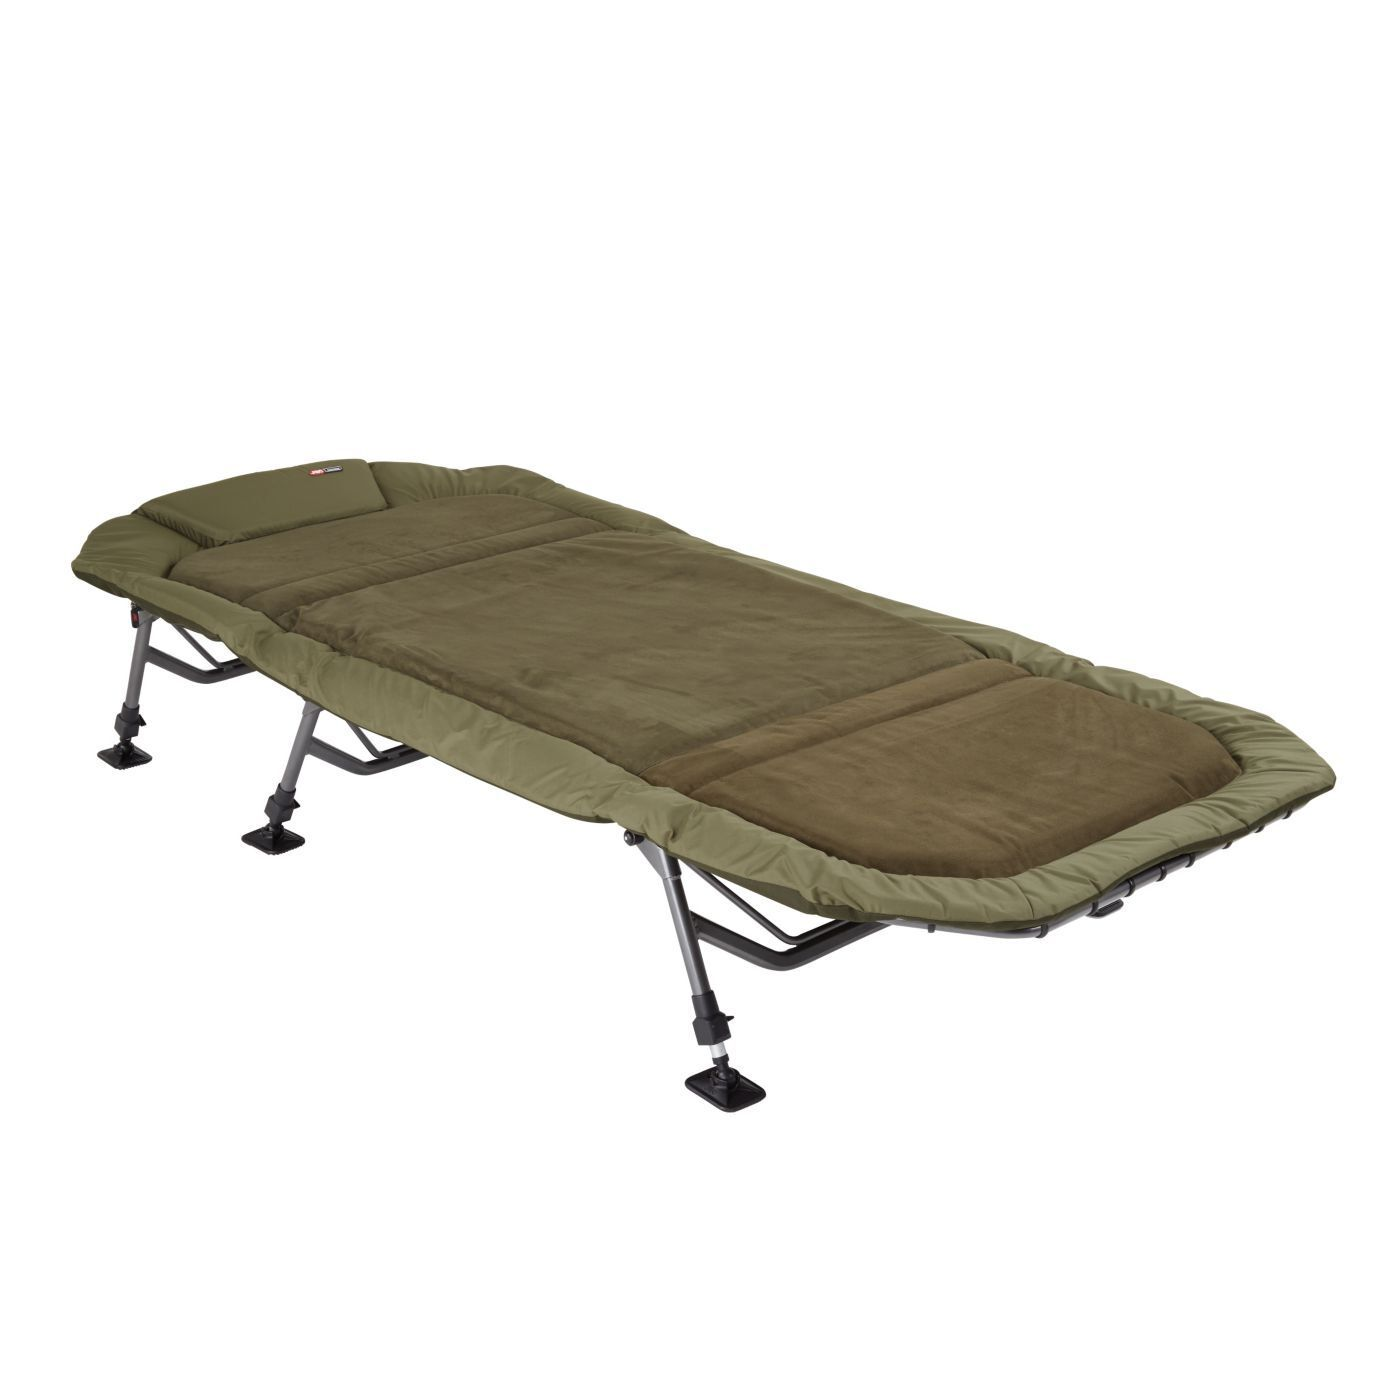 JRC Cocoon 2G Levelbed Fishing Bedchair XL Size - 1378290